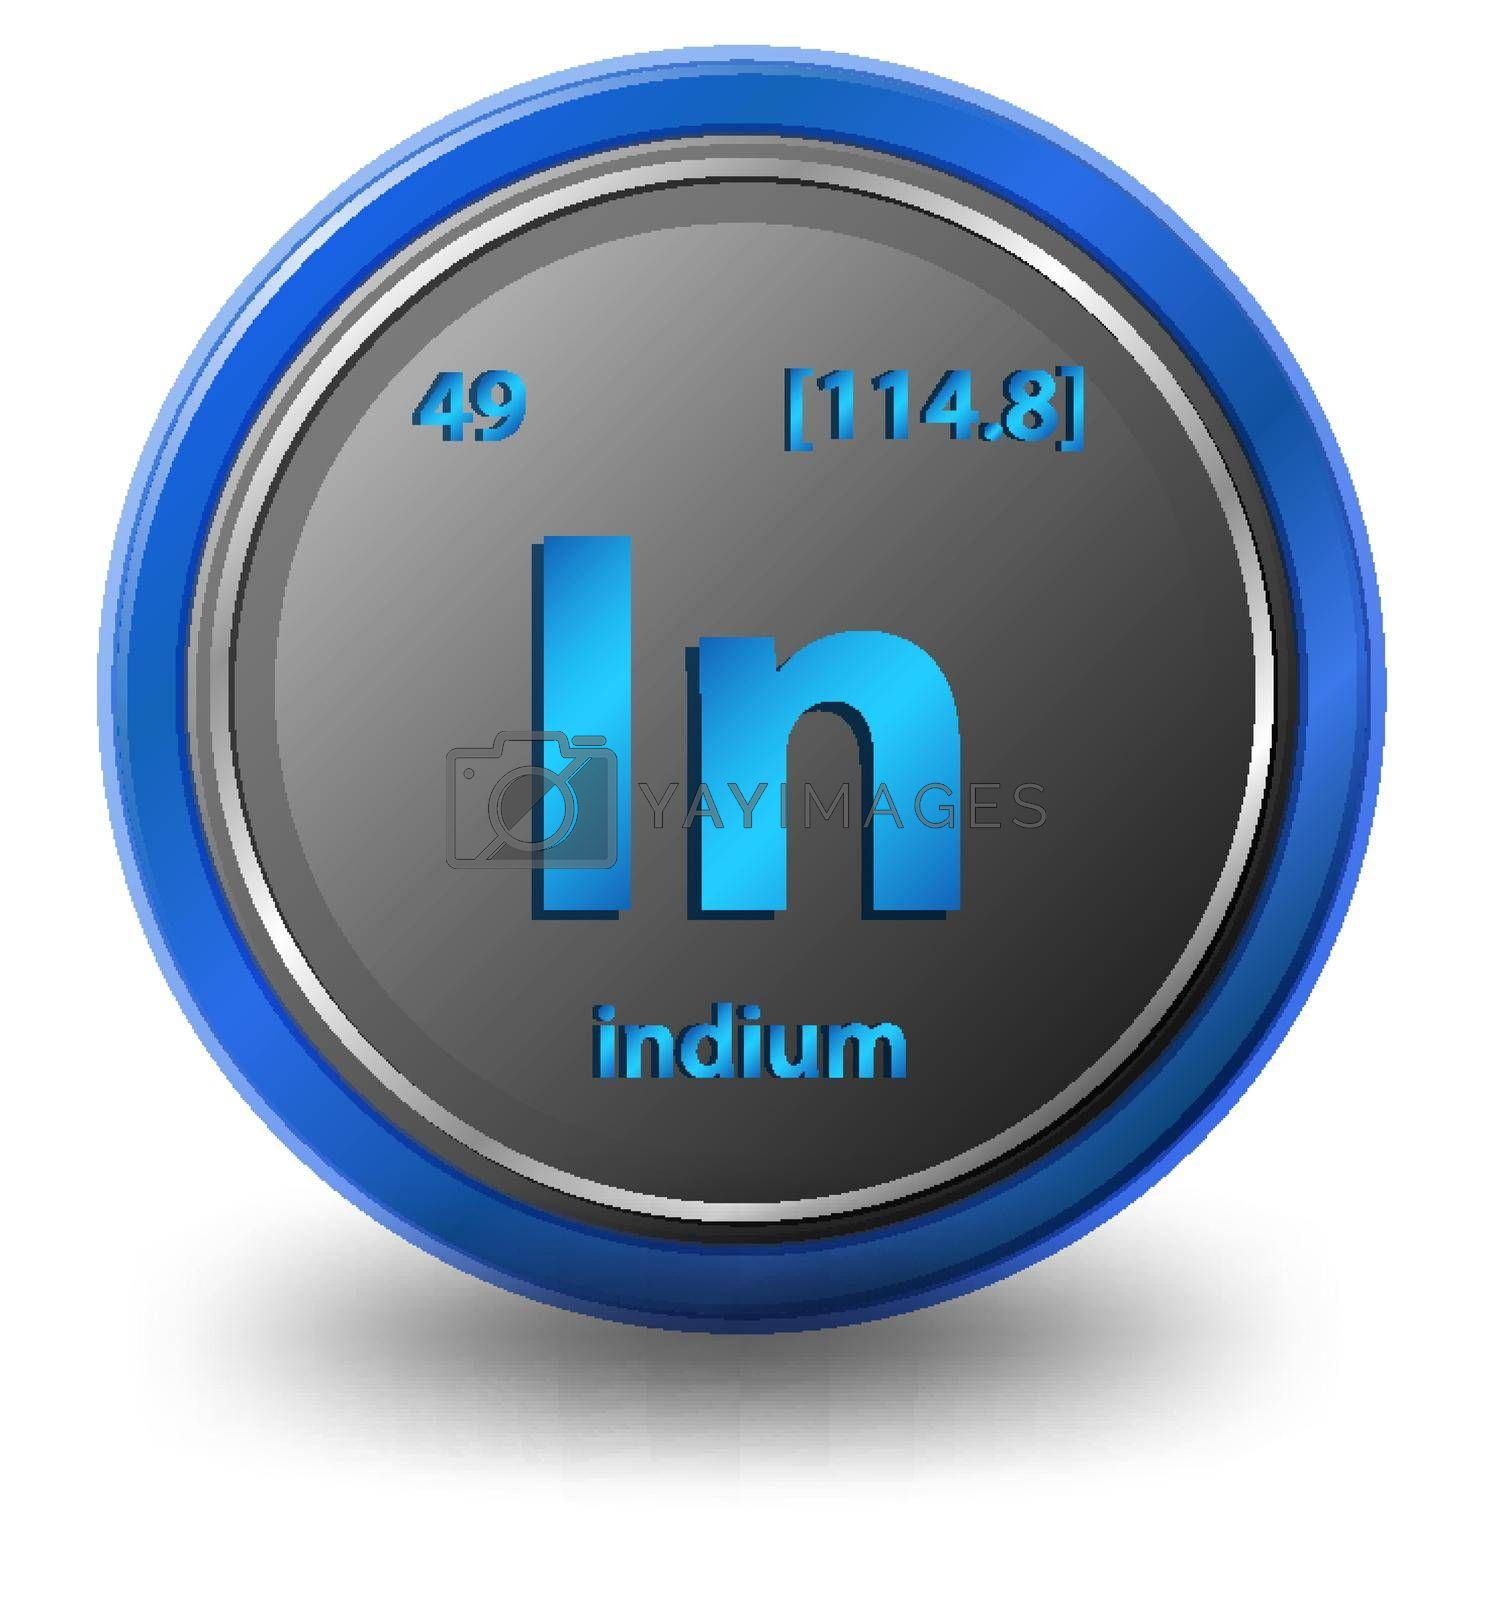 Indium chemical element. Chemical symbol with atomic number and atomic mass. illustration